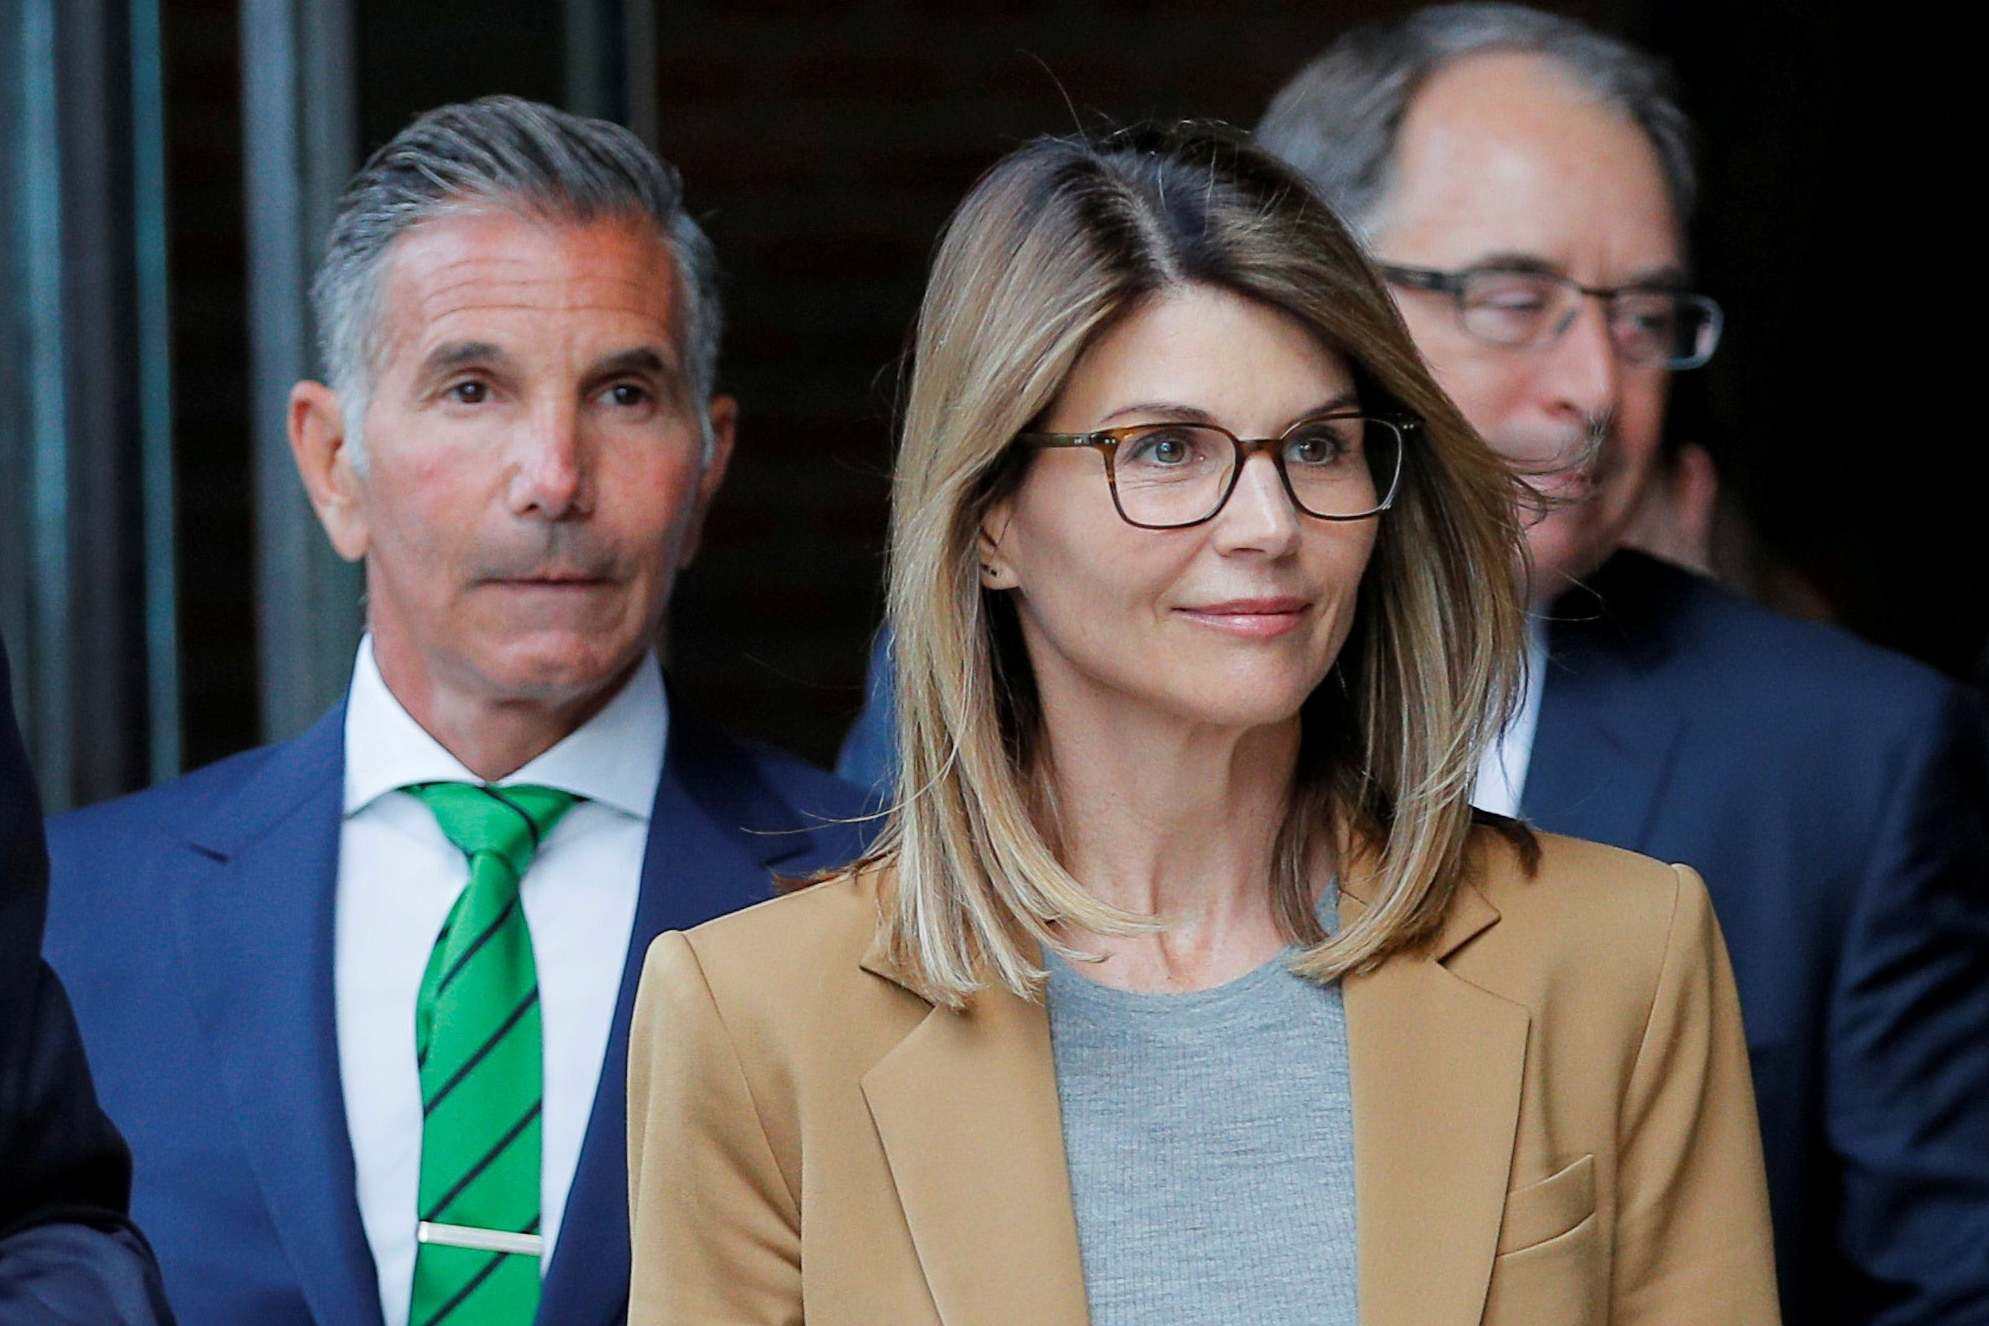 Lori Loughlin launched after serving penal advanced term for university bribes scam